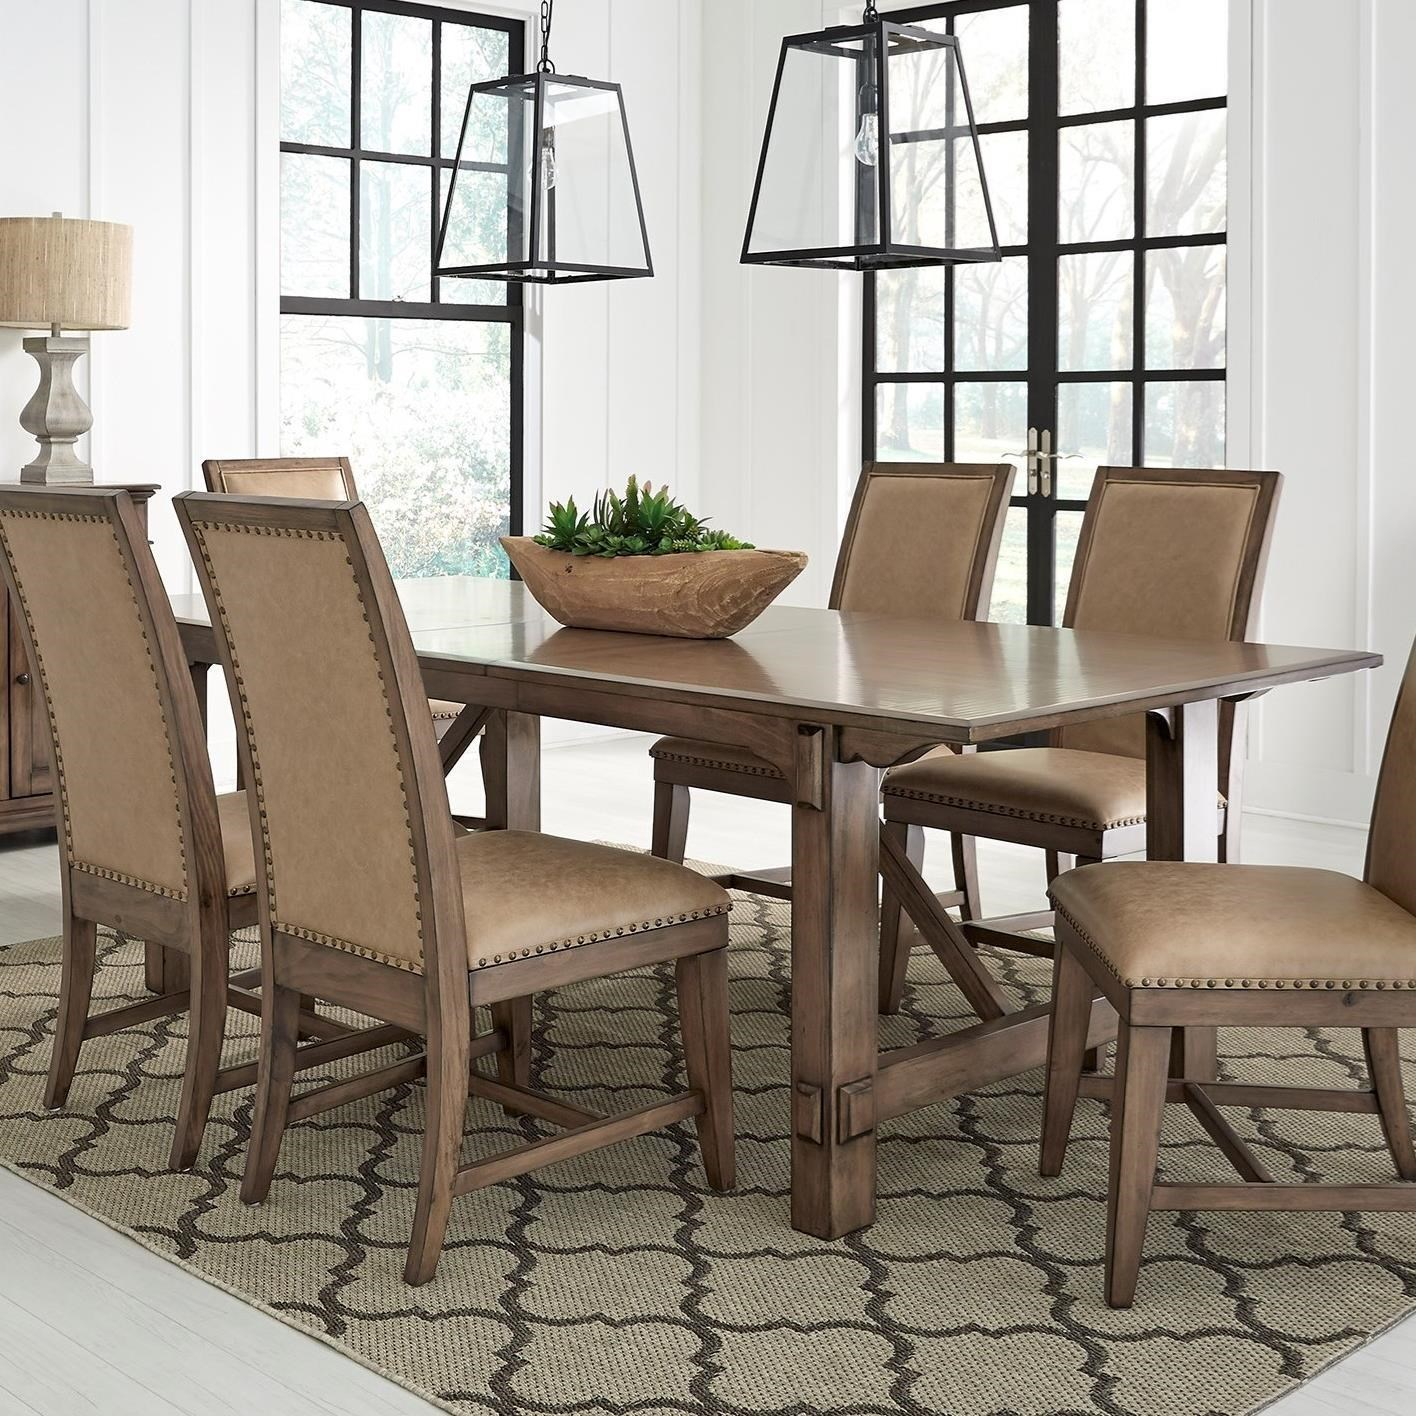 Aspen Dining Table by Standard Furniture at Beds N Stuff